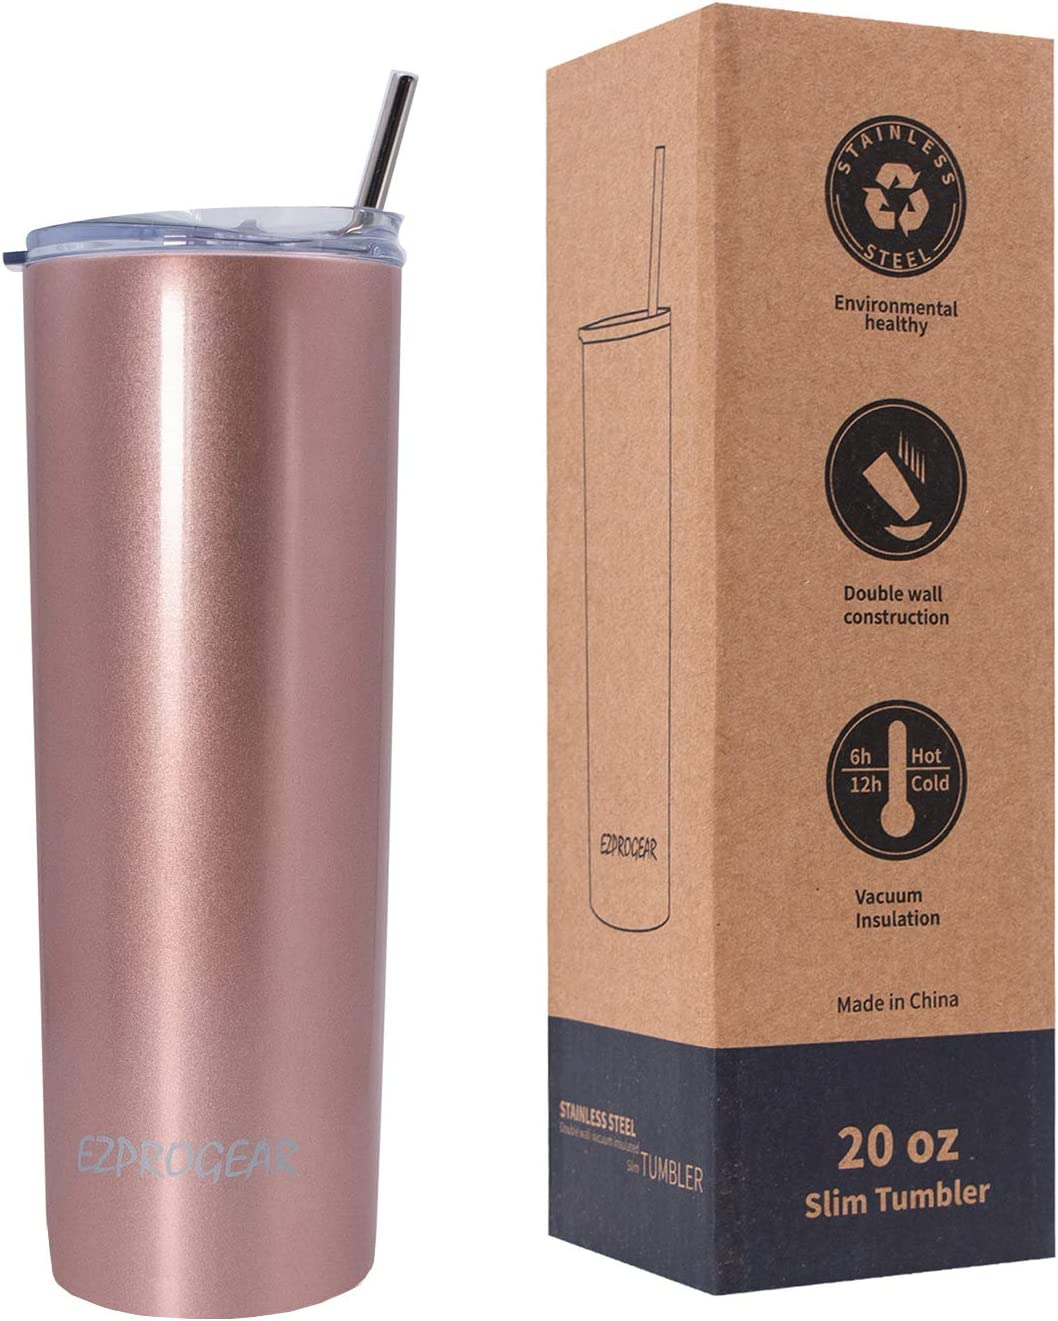 Ezprogear 20 oz Rose Gold Stainless Steel Slim Skinny Coffee Tumbler Vacuum Insulated with Straw (20 oz, Rose Gold)